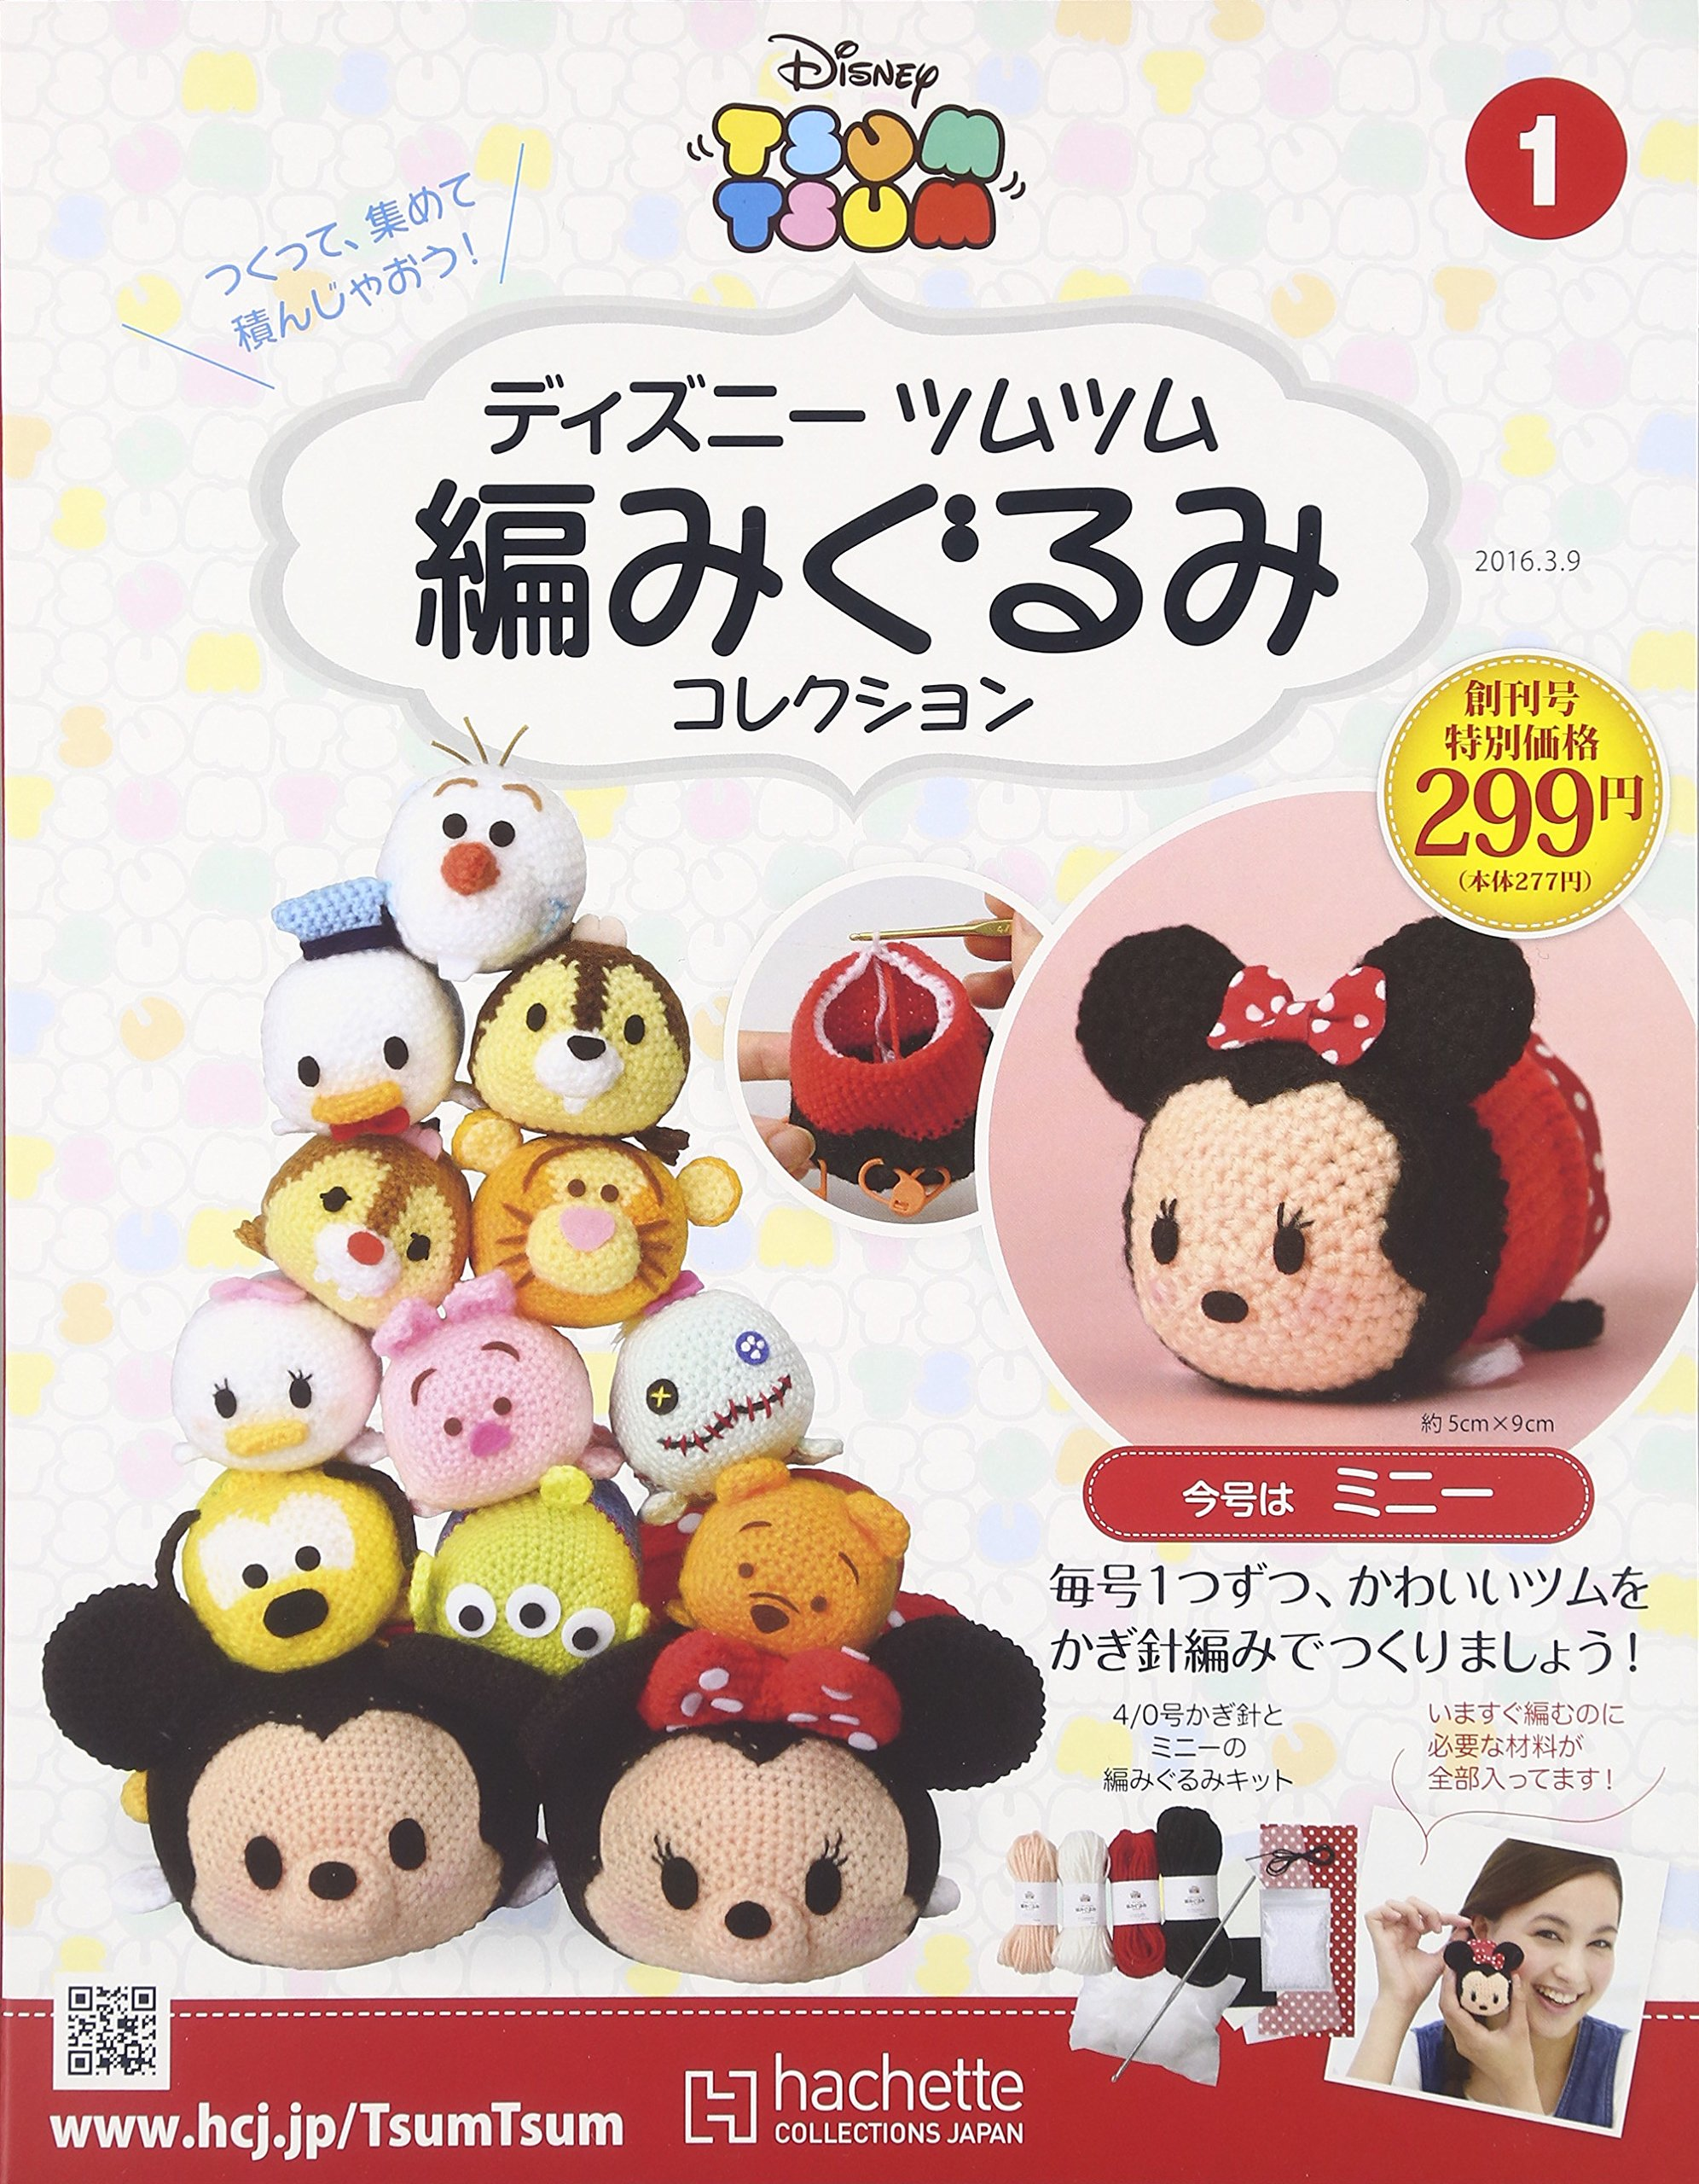 Tiny Rabbit Hole Amigurumi Japanese Pattern Disney Amazon Hachette Workshop Singapore Tsum Tsum Mickey Mouse Minnie Piglet Daisy Duck Pluto Winnie the Pooh Donald Olaf